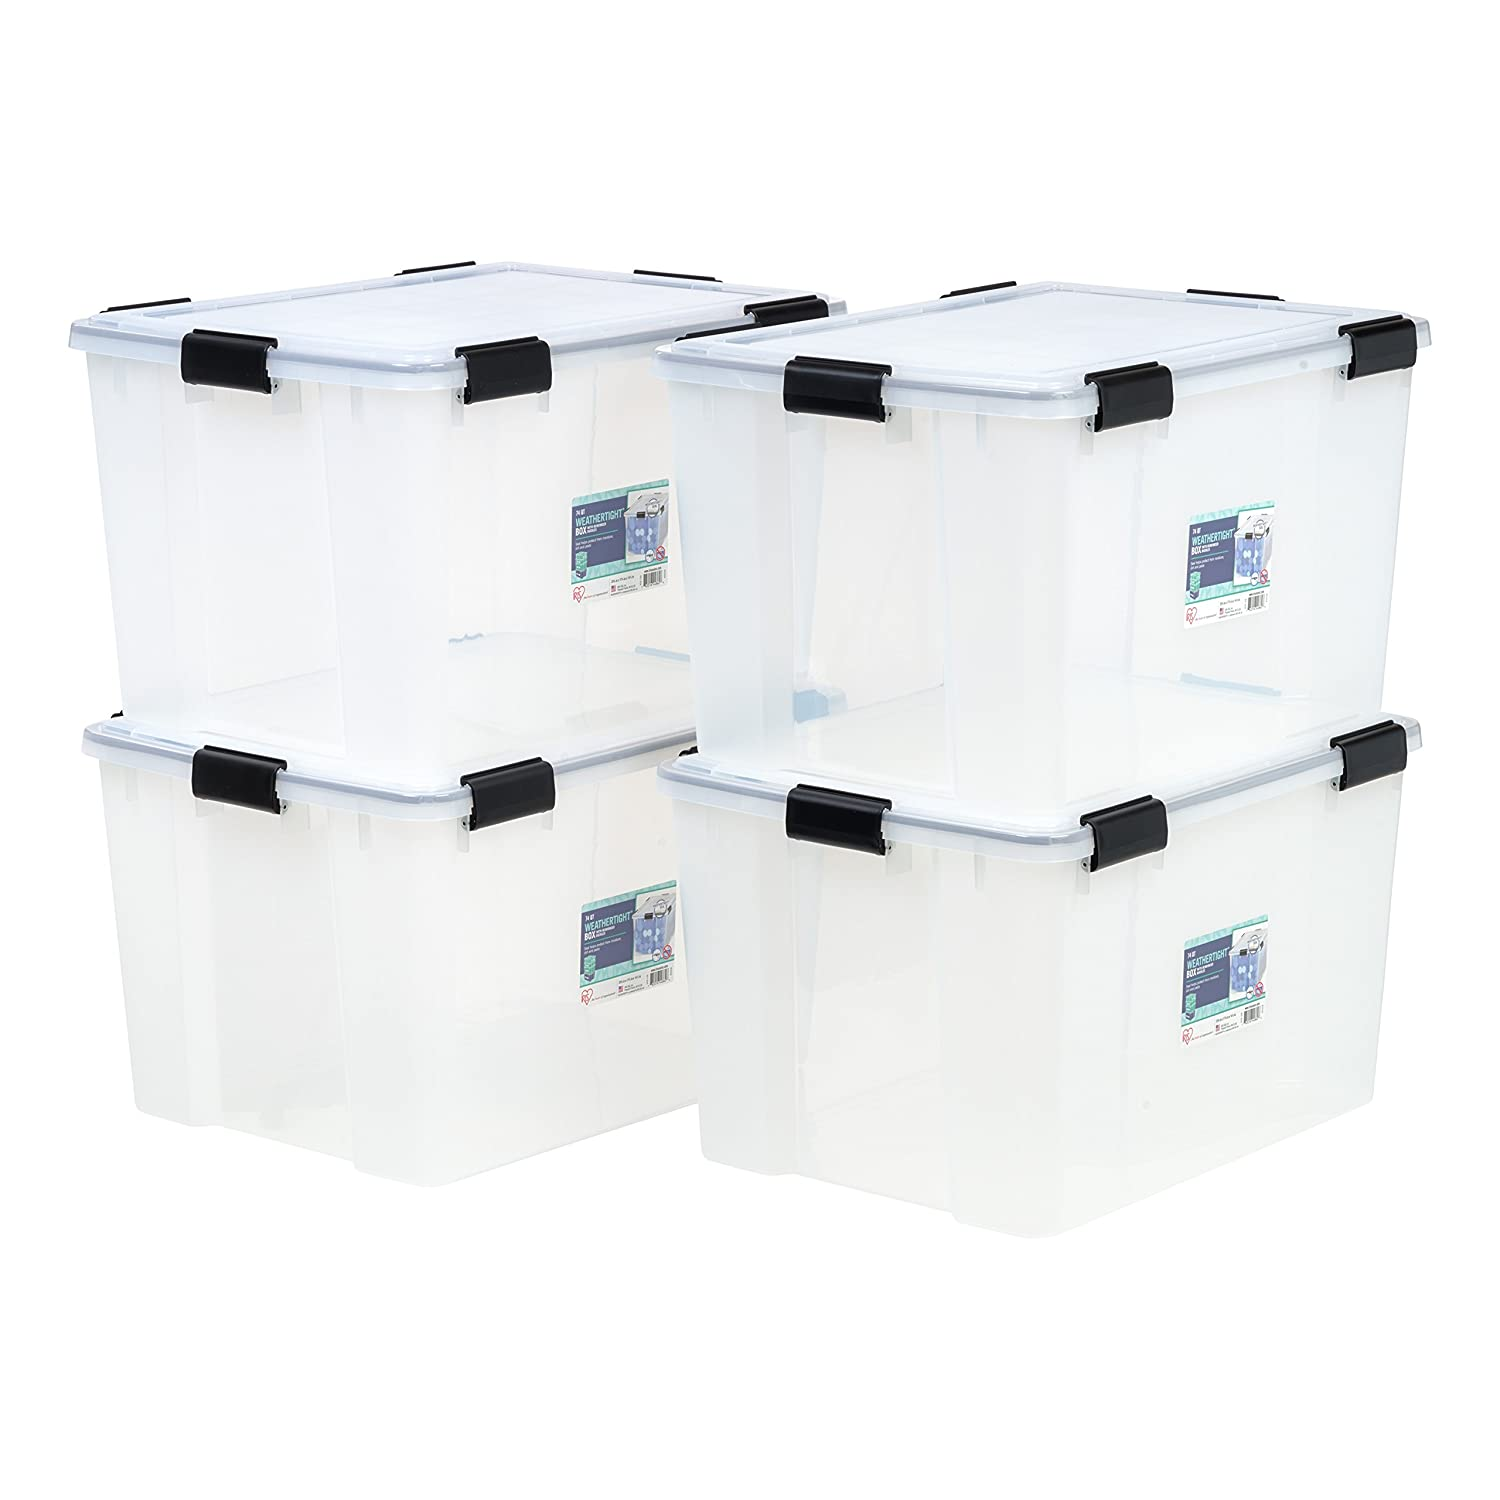 IRIS 74 Quart WEATHERTIGHT Storage Box, 4 Pack, Clear